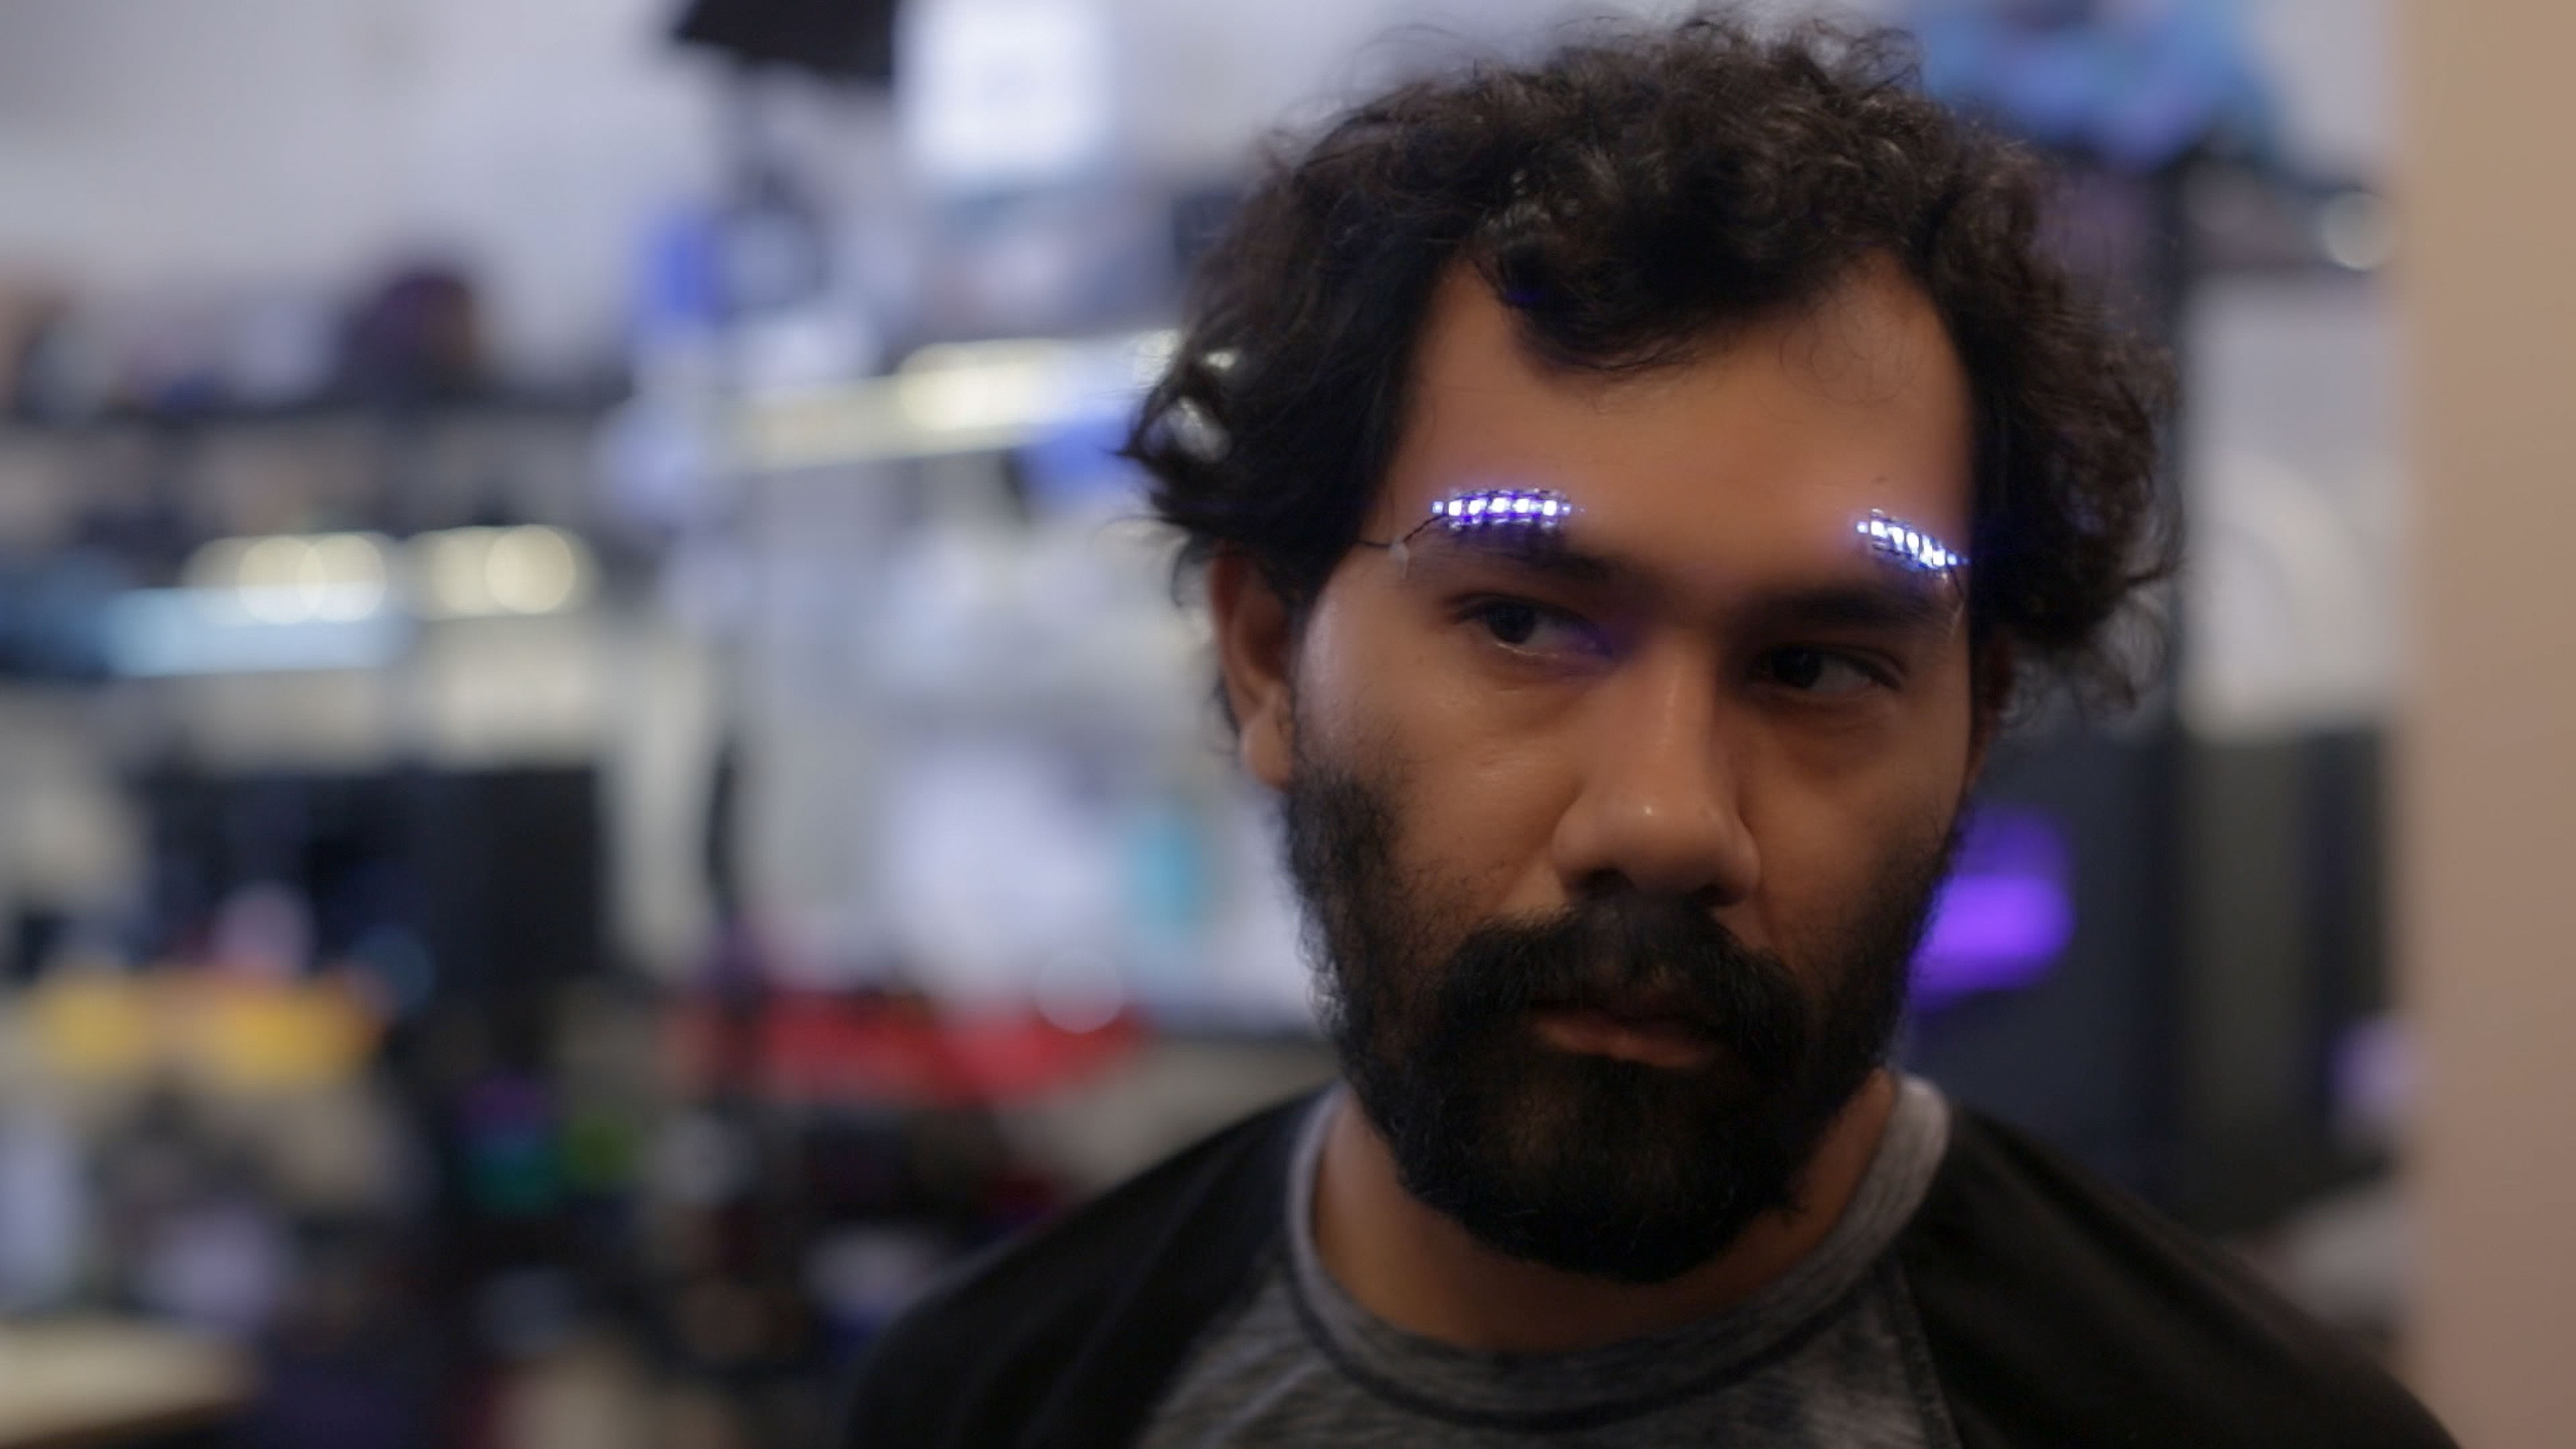 leds_applied-to-face.jpg